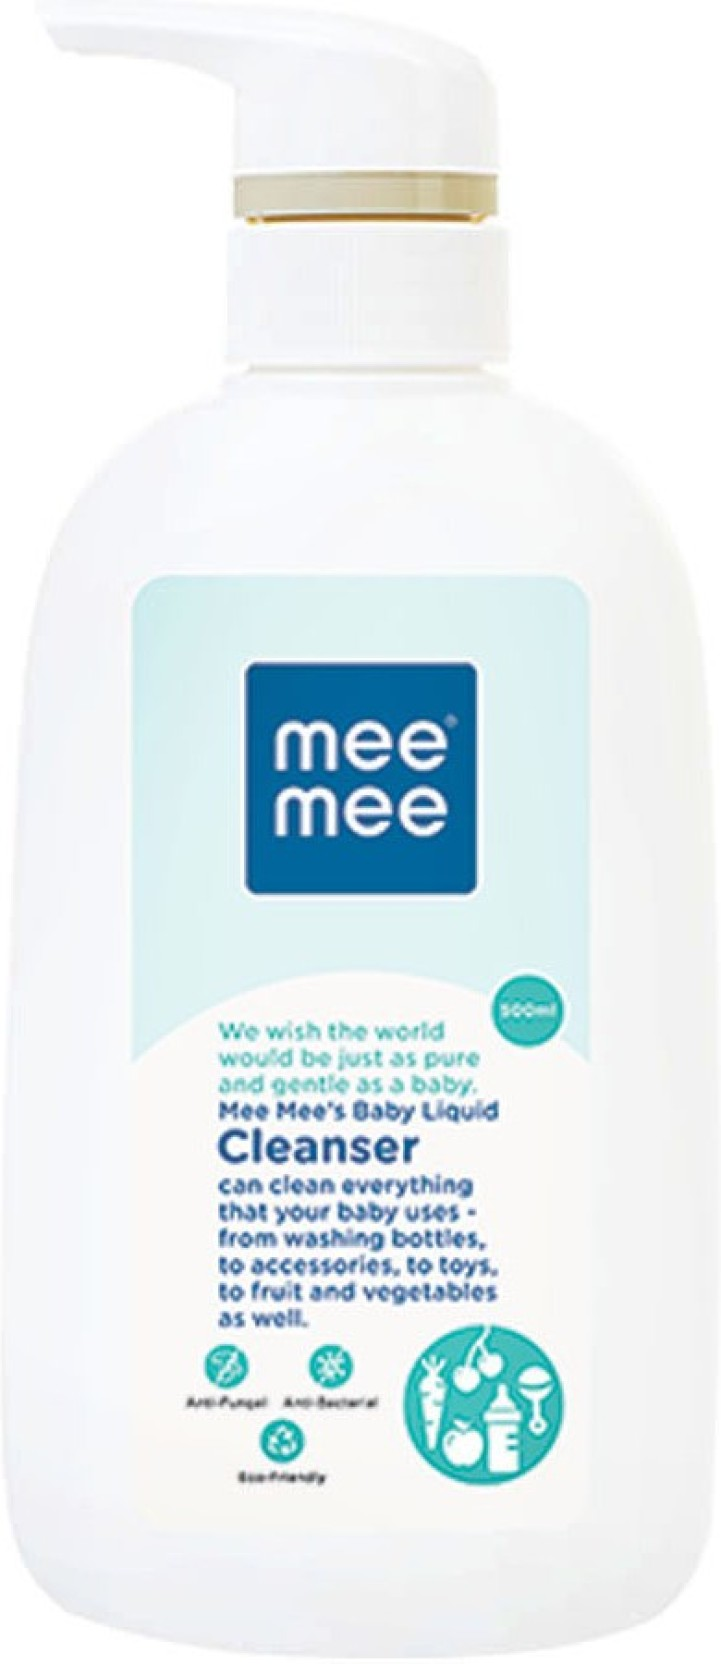 Meemee Baby Accessories Vegetable Liquid Cleanser Buy Care Pure Laundry Refill 2 Get 3 700 Ml Add To Cart Now